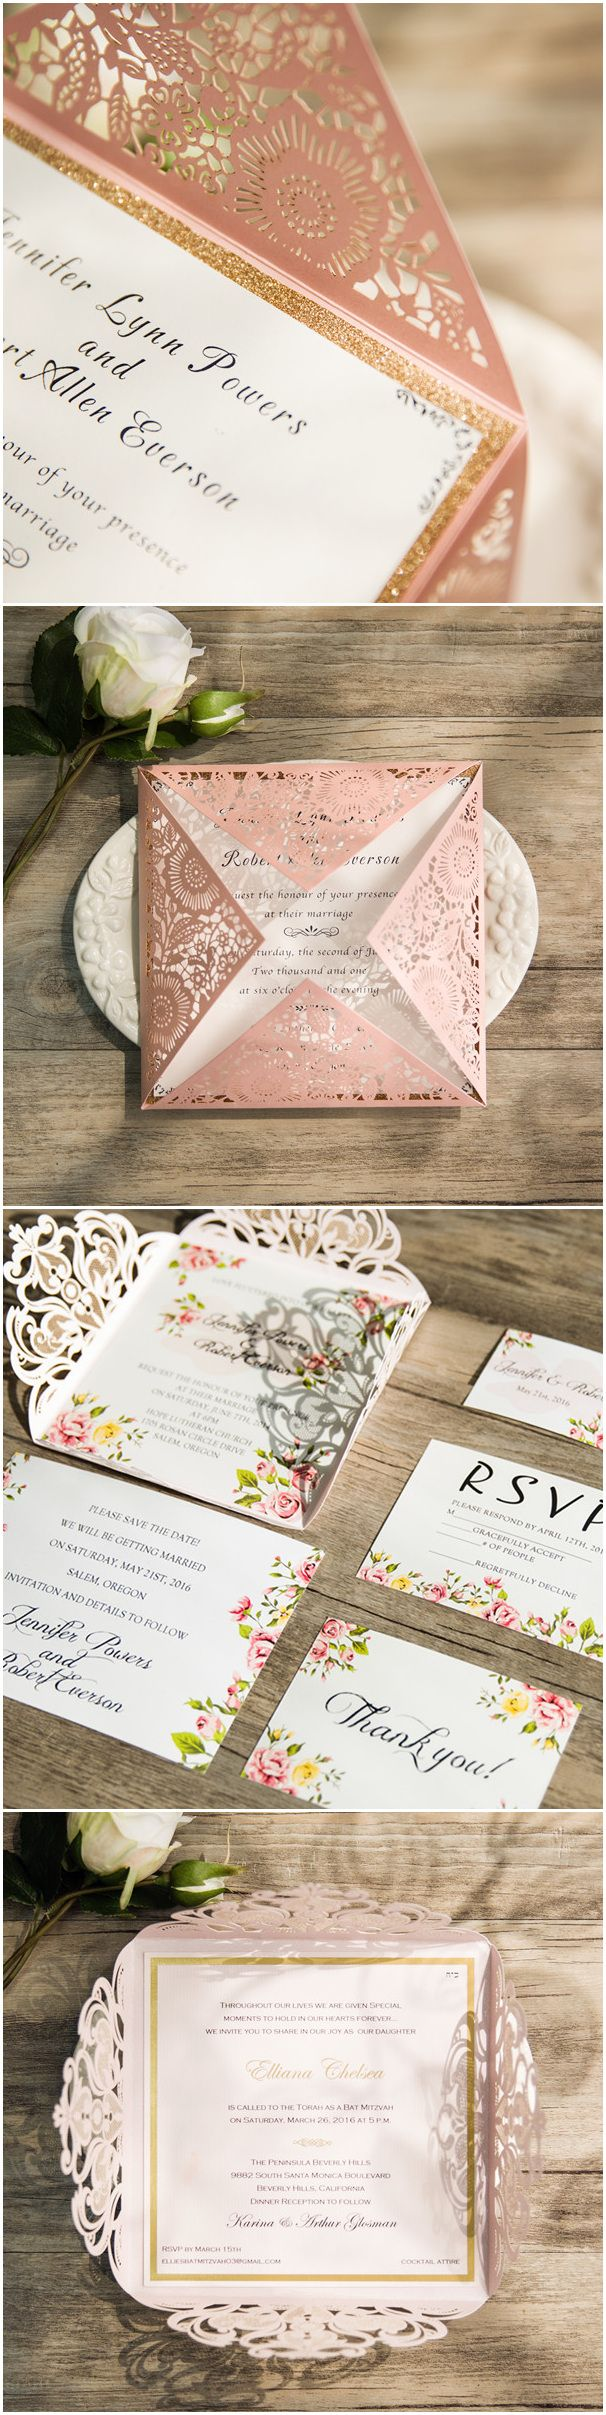 make your own wedding invitations online free%0A shades of pink wedding invitations  laser cut wedding invitations